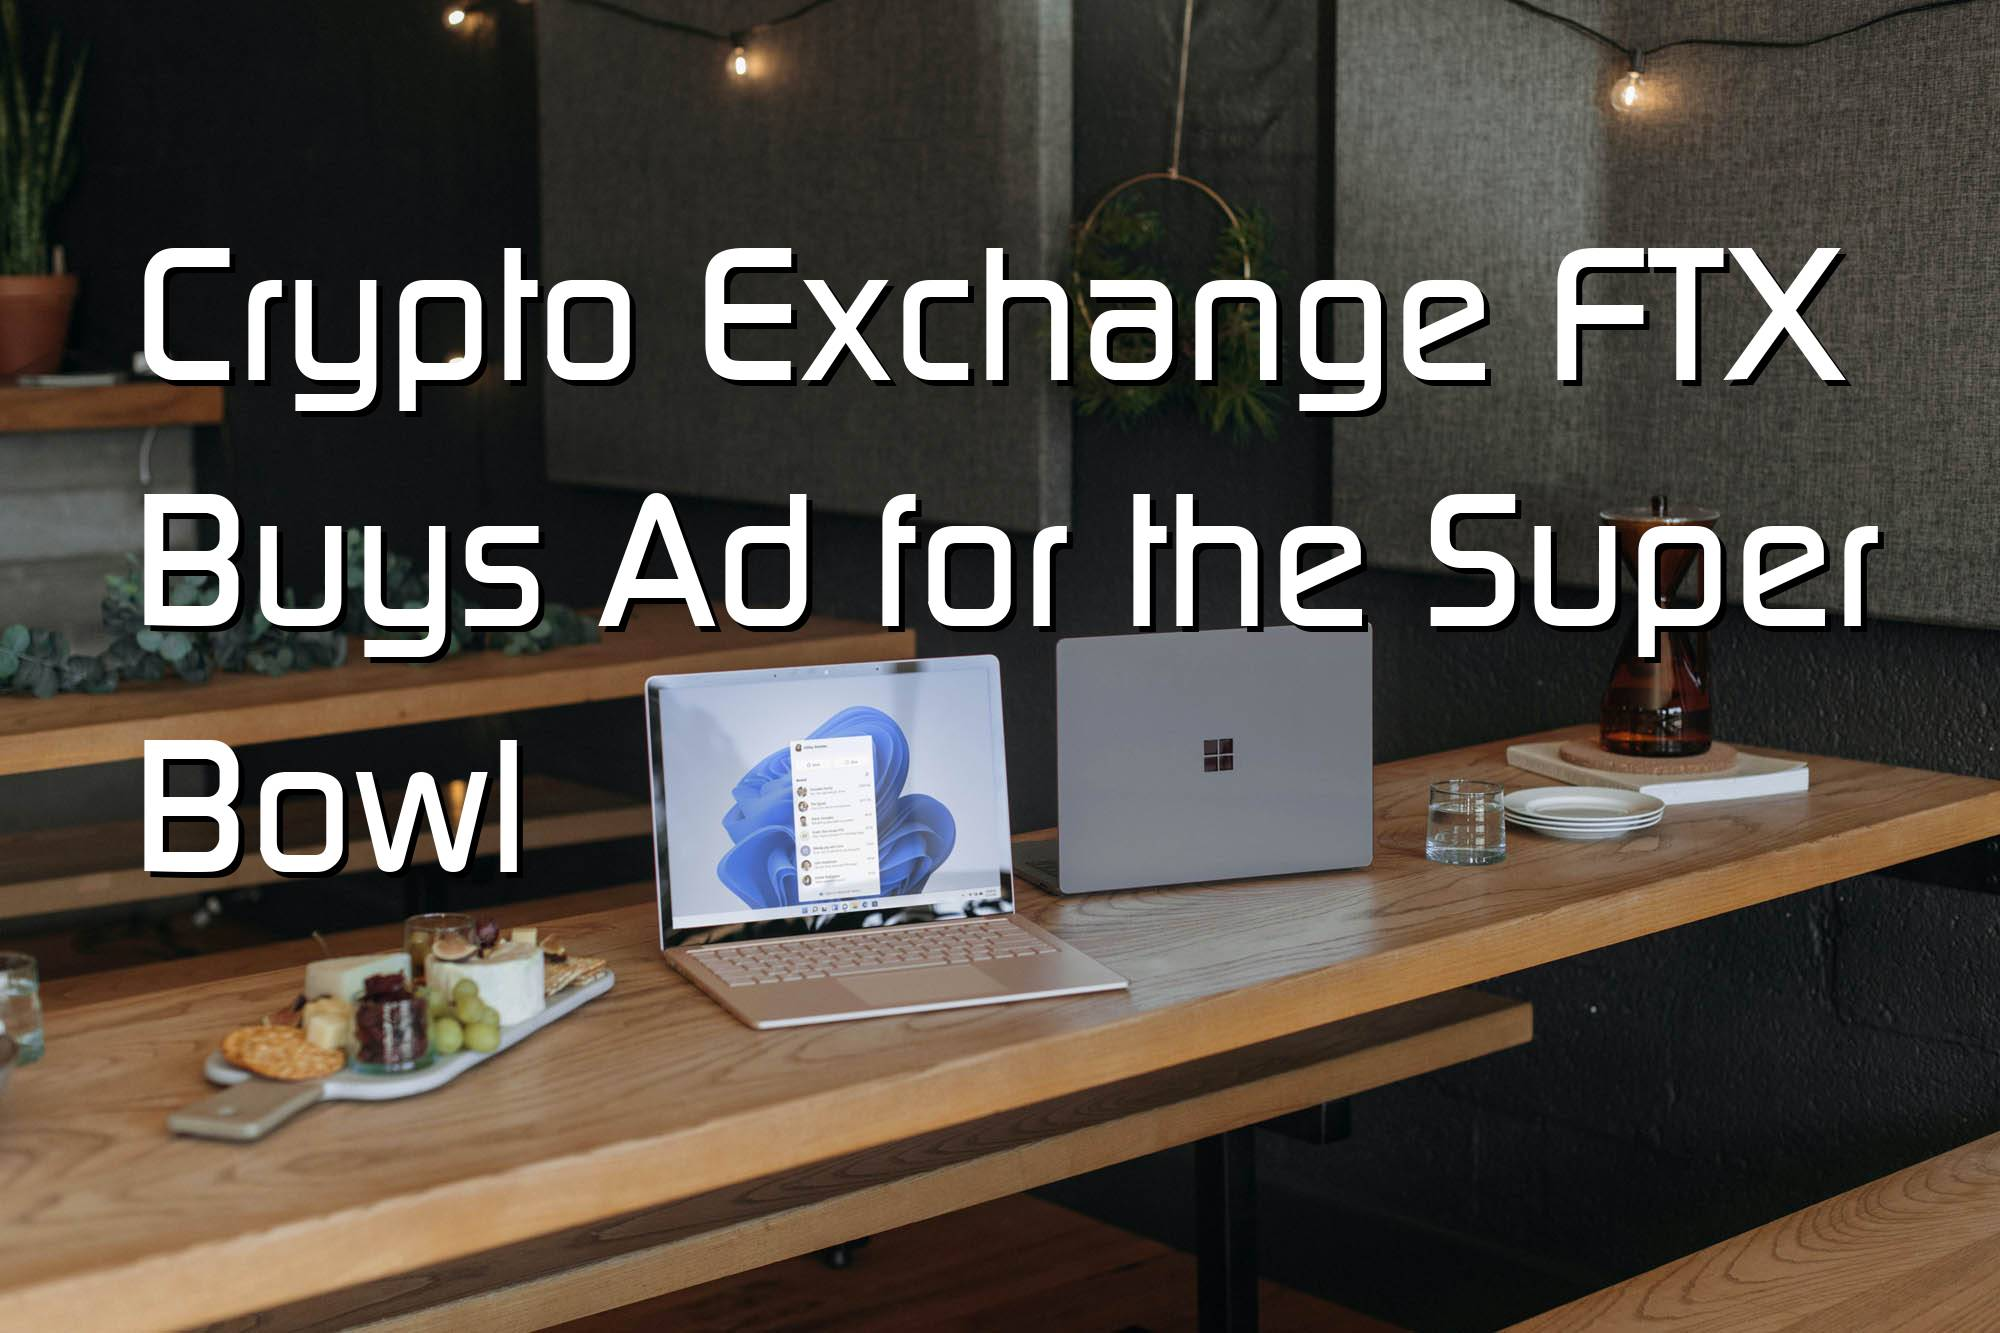 @$60516: Crypto Exchange FTX Buys Ad for the Super Bowl